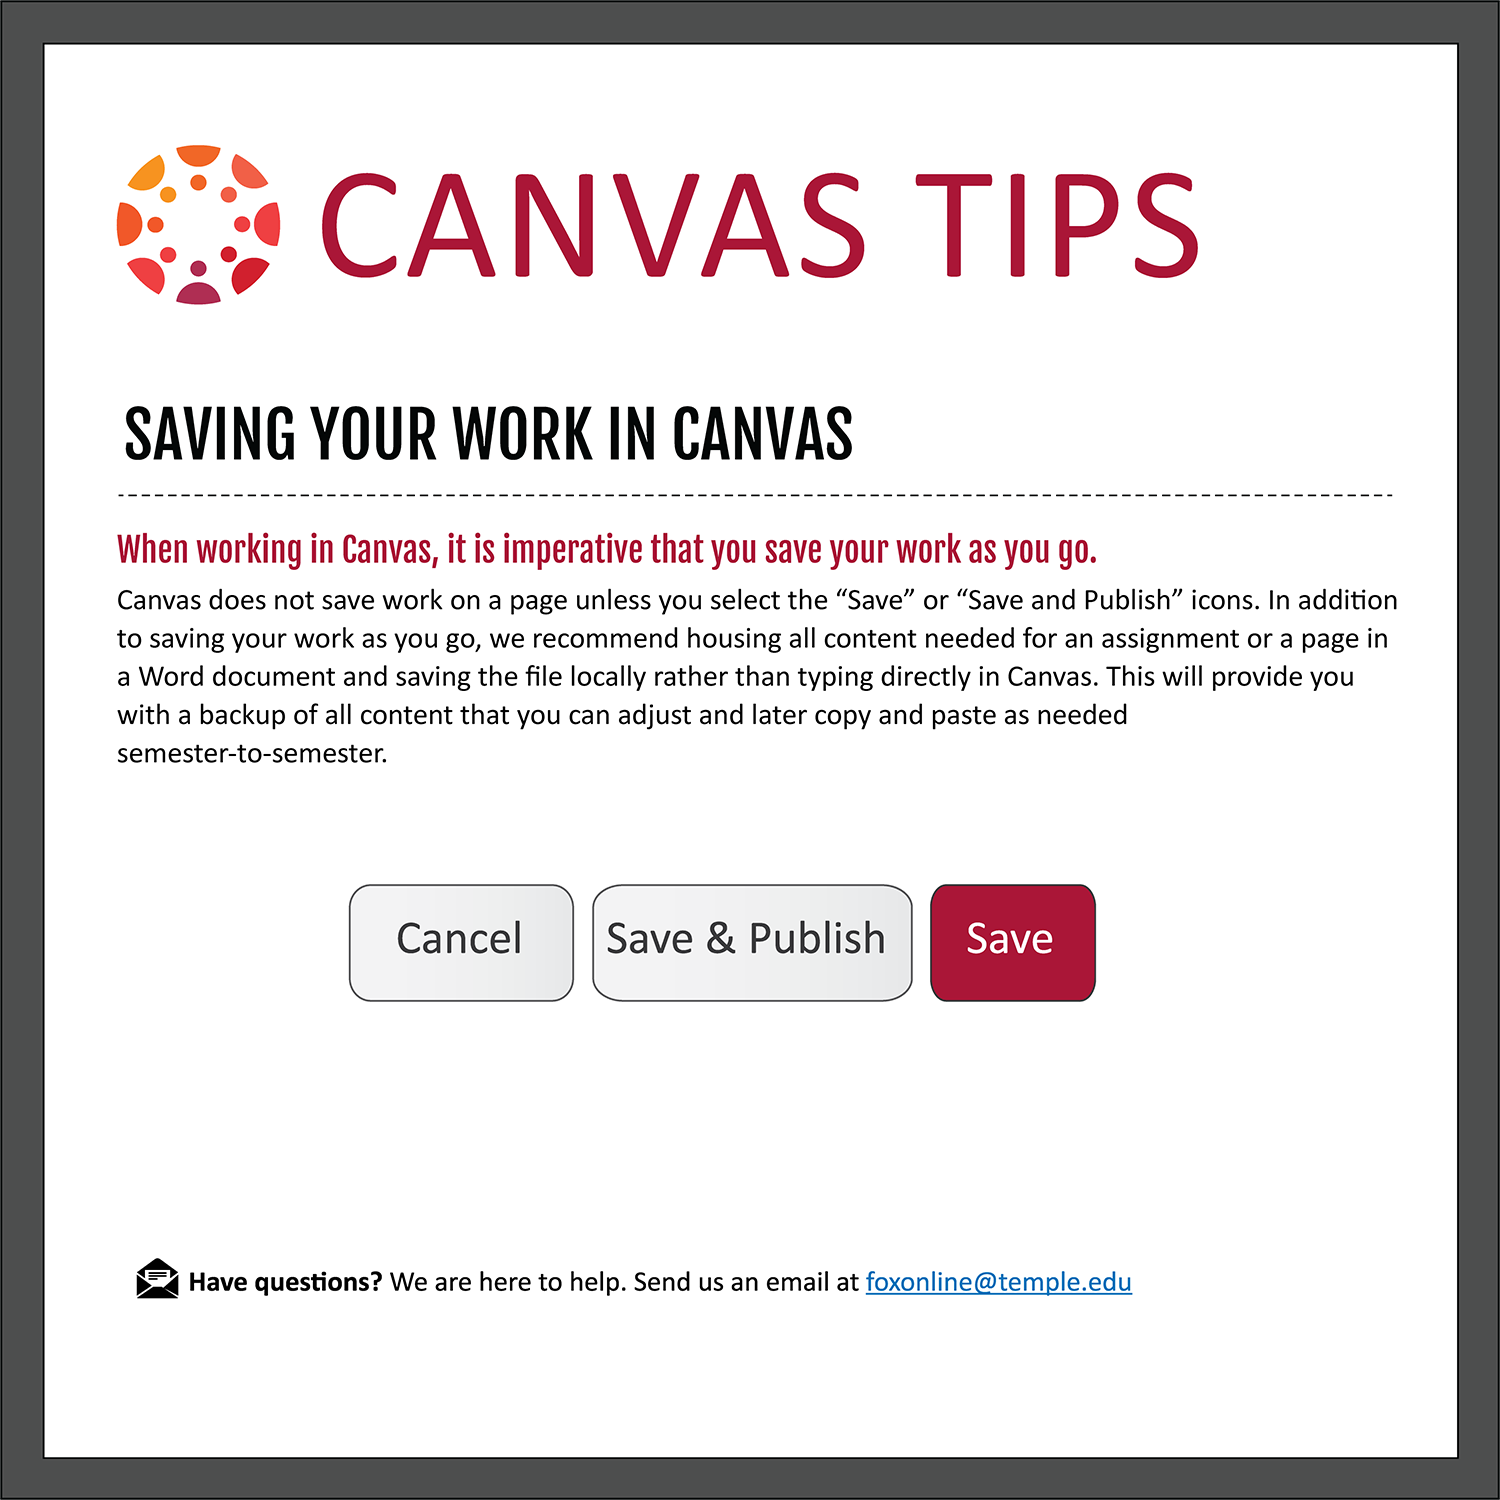 Tip 15: Saving Your Work in Canvas